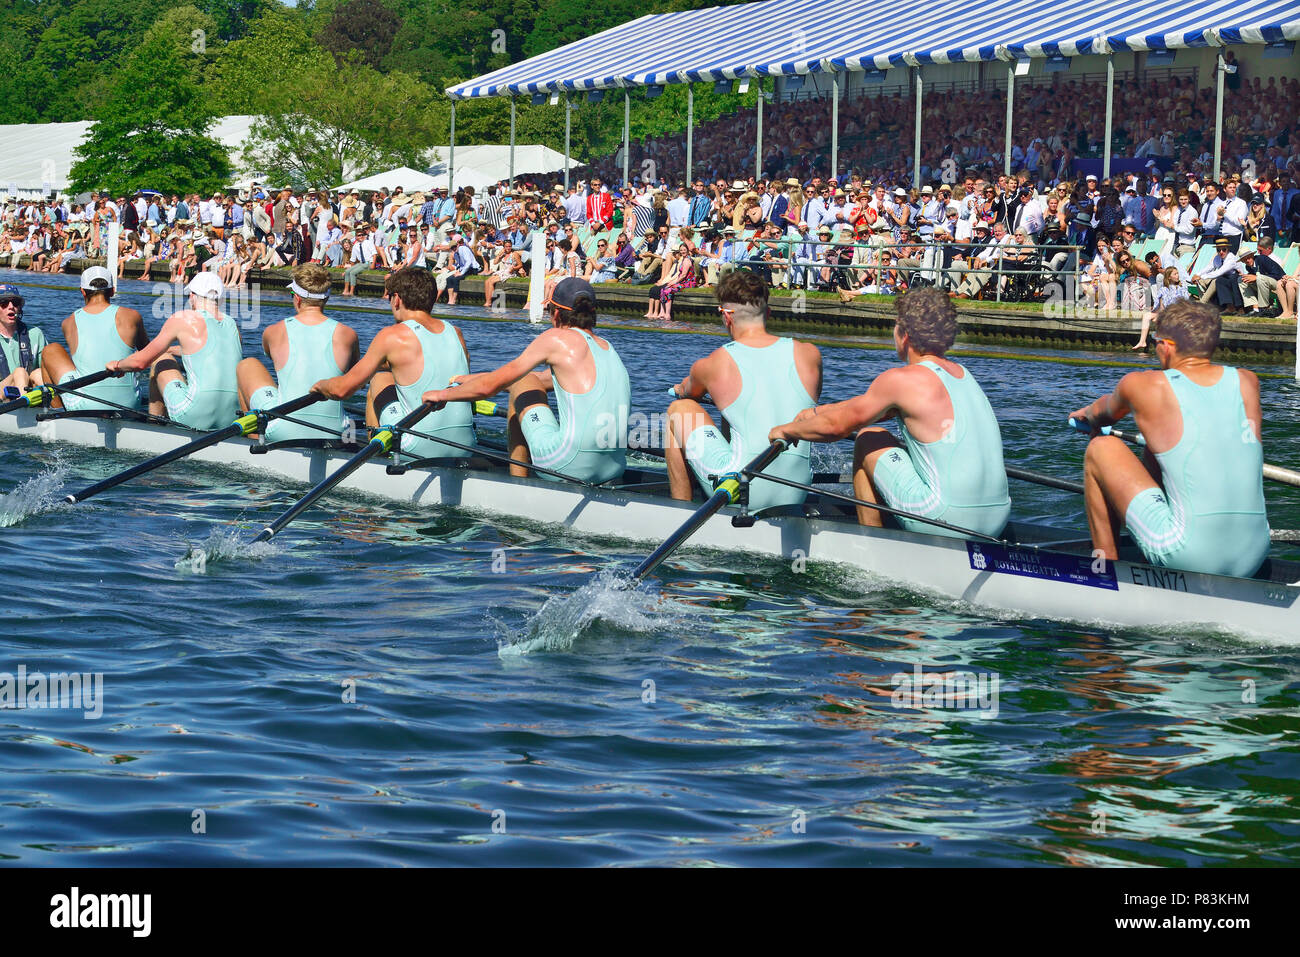 Henley-on-Thames, UK. 8th July, 2018. The final day of racing for the Princess Elizabeth Challenge Cup at Henley Royal Regatta. St. Paul's School beat Eton College. (near side )The crew equalled the Barrier record, beat their own Fawley record and then destroyed the course record by 11 seconds to win in a time of 6.06. - Stock Image